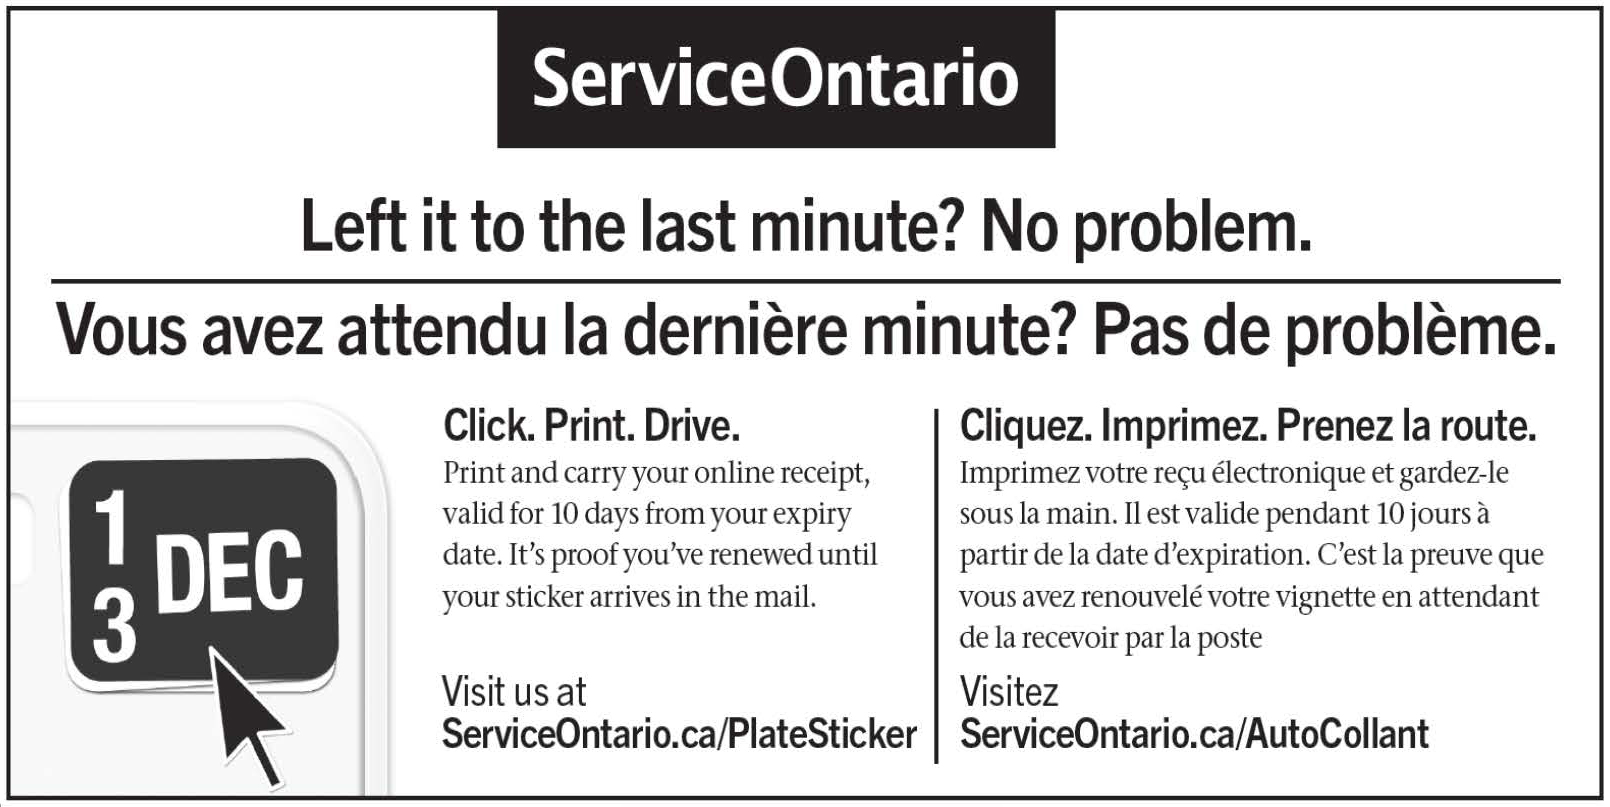 "Above is a picture from the Service Ontario web site. The picture is of a Service Ontario advertisement indicating how to renew your plate stickers. It says ""Left to the last minute? No problem. Click. Print. Drive. Print and carry your online receipt, valid for 10 days from your expiry date. It's proof you've renewed until your sticker arrives in the mail. Visit us at serviceontario.ca/platesticker."""